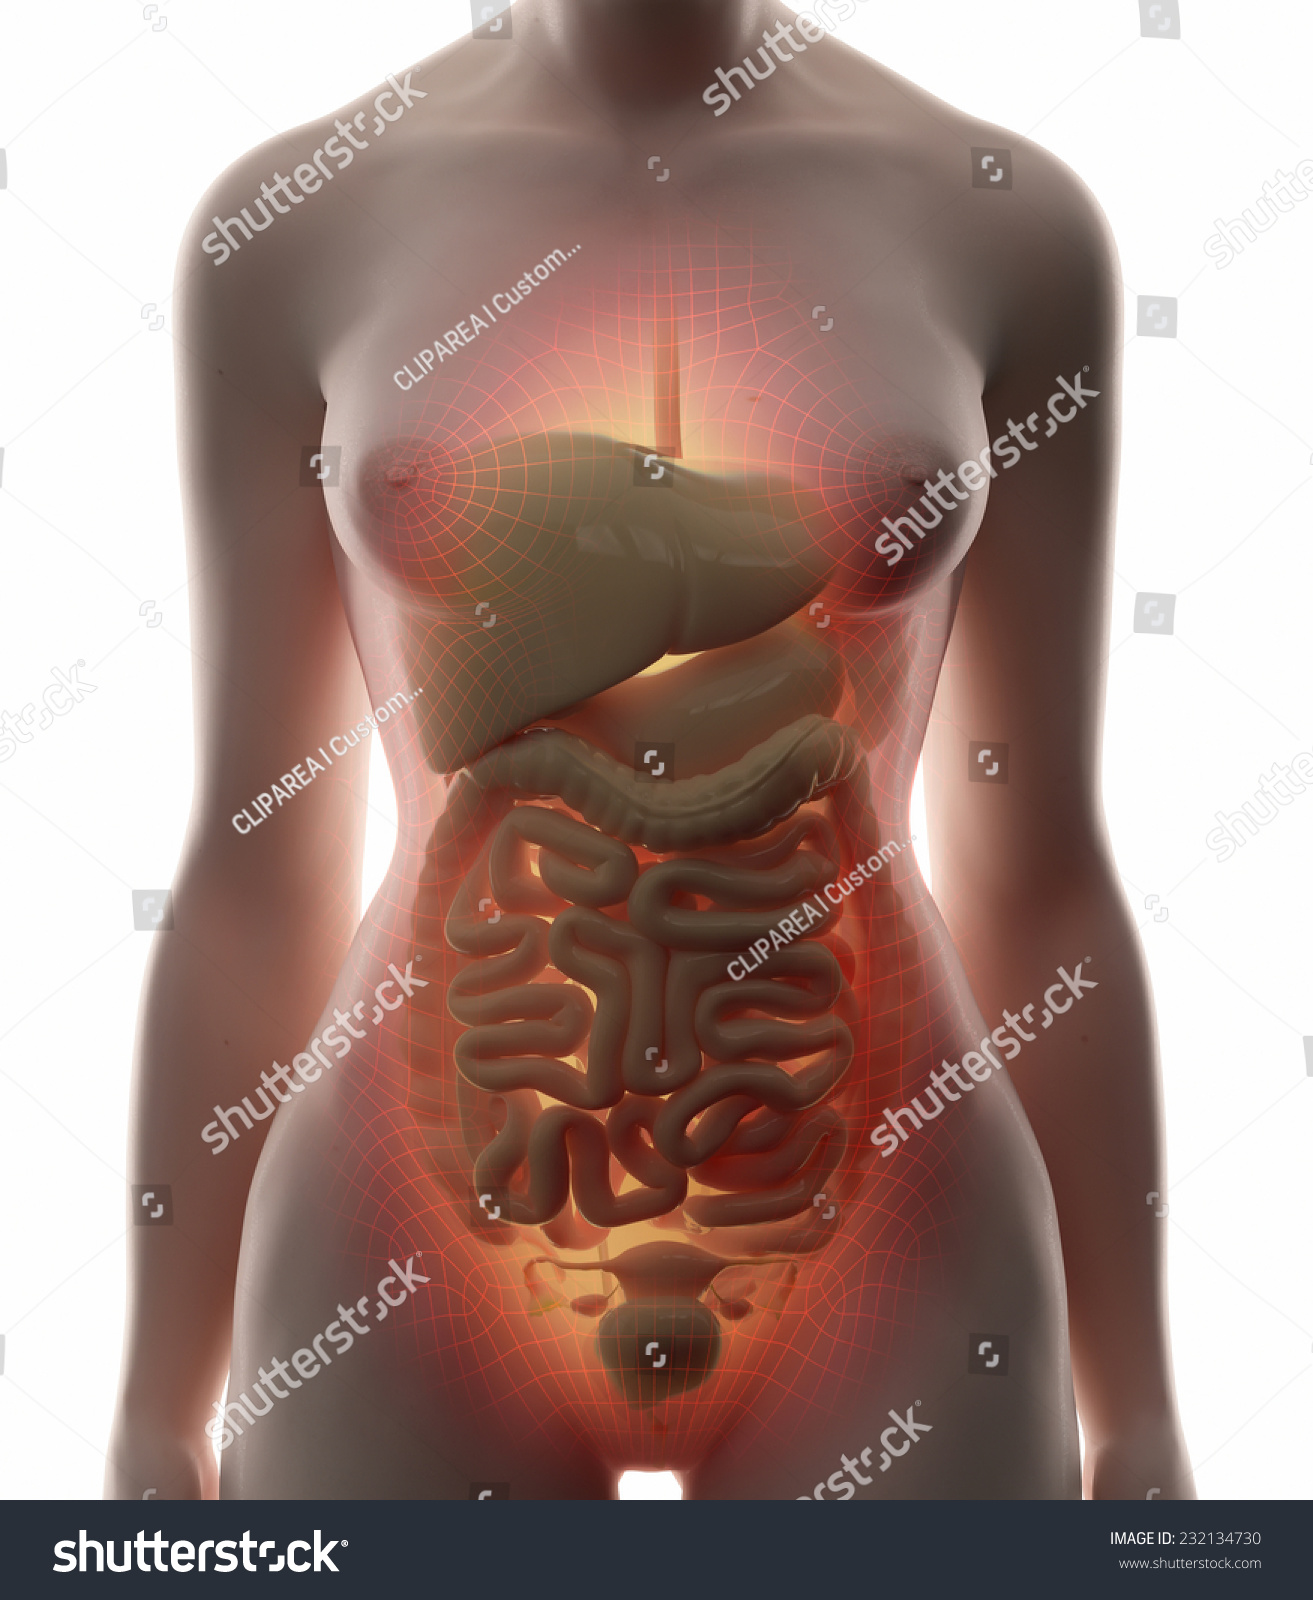 Royalty Free Stock Illustration of Abdominal Organs Real View Female ...